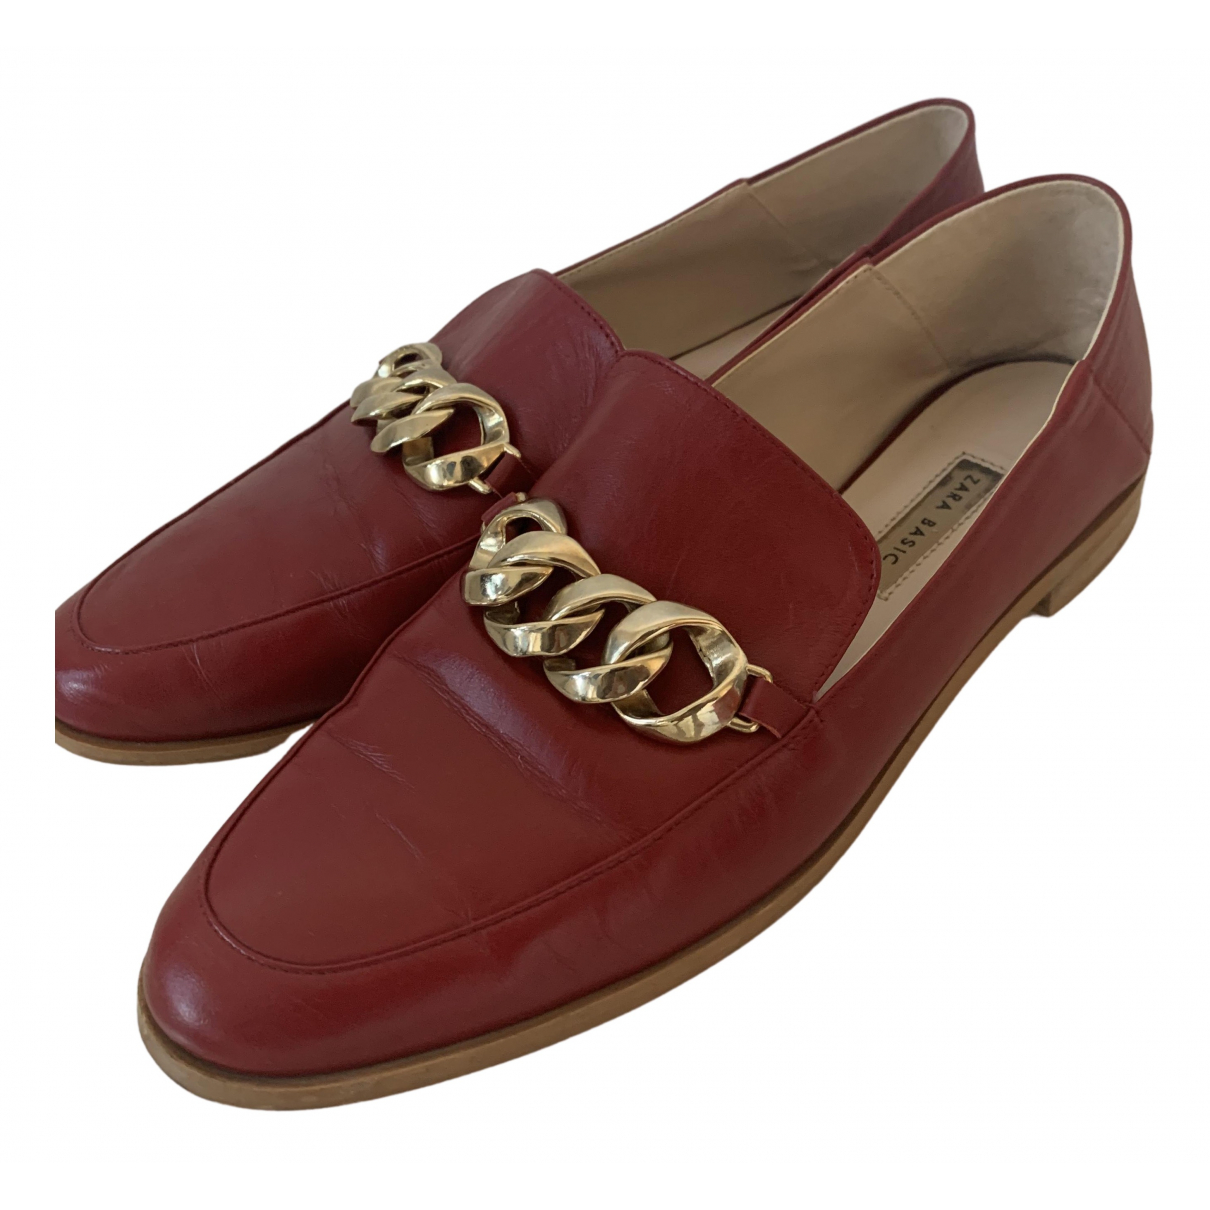 Zara N Red Leather Mules & Clogs for Women 40 EU